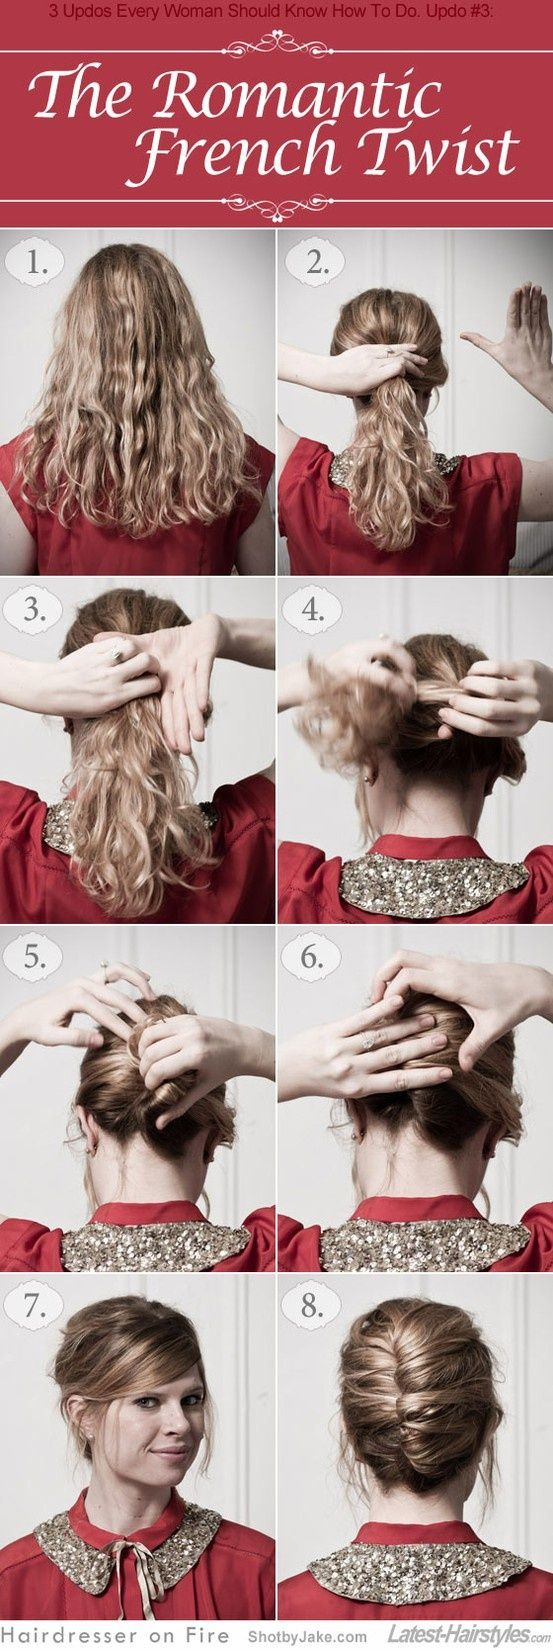 best images about uppity updo on pinterest upside down braid